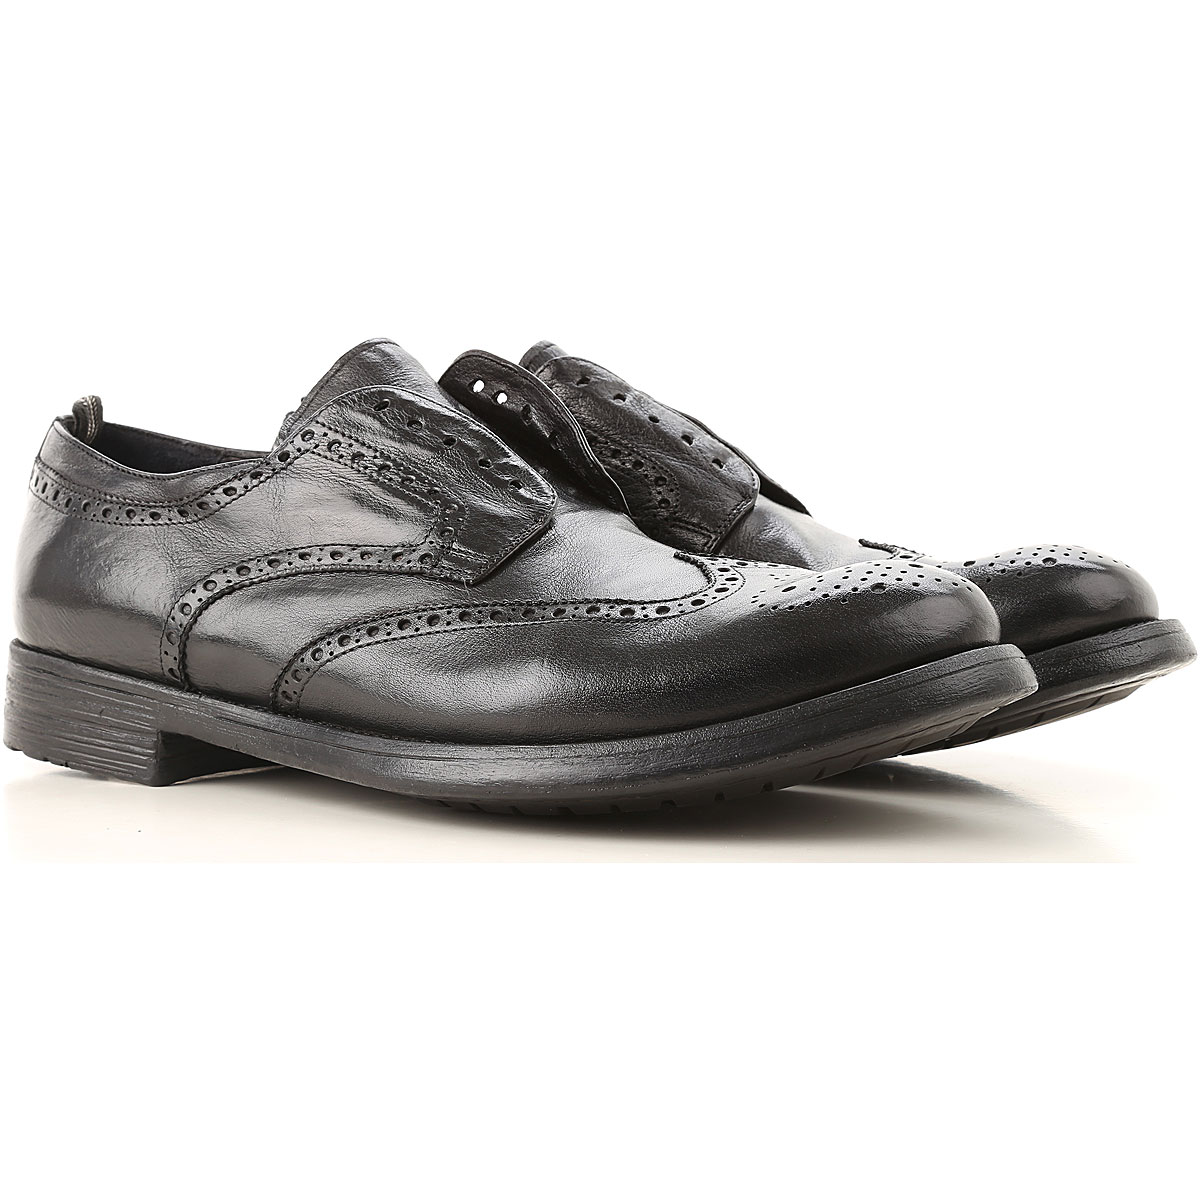 Officine Creative Slip on Sneakers for Men On Sale in Outlet, Black, Leather, 2019, 10.25 7.75